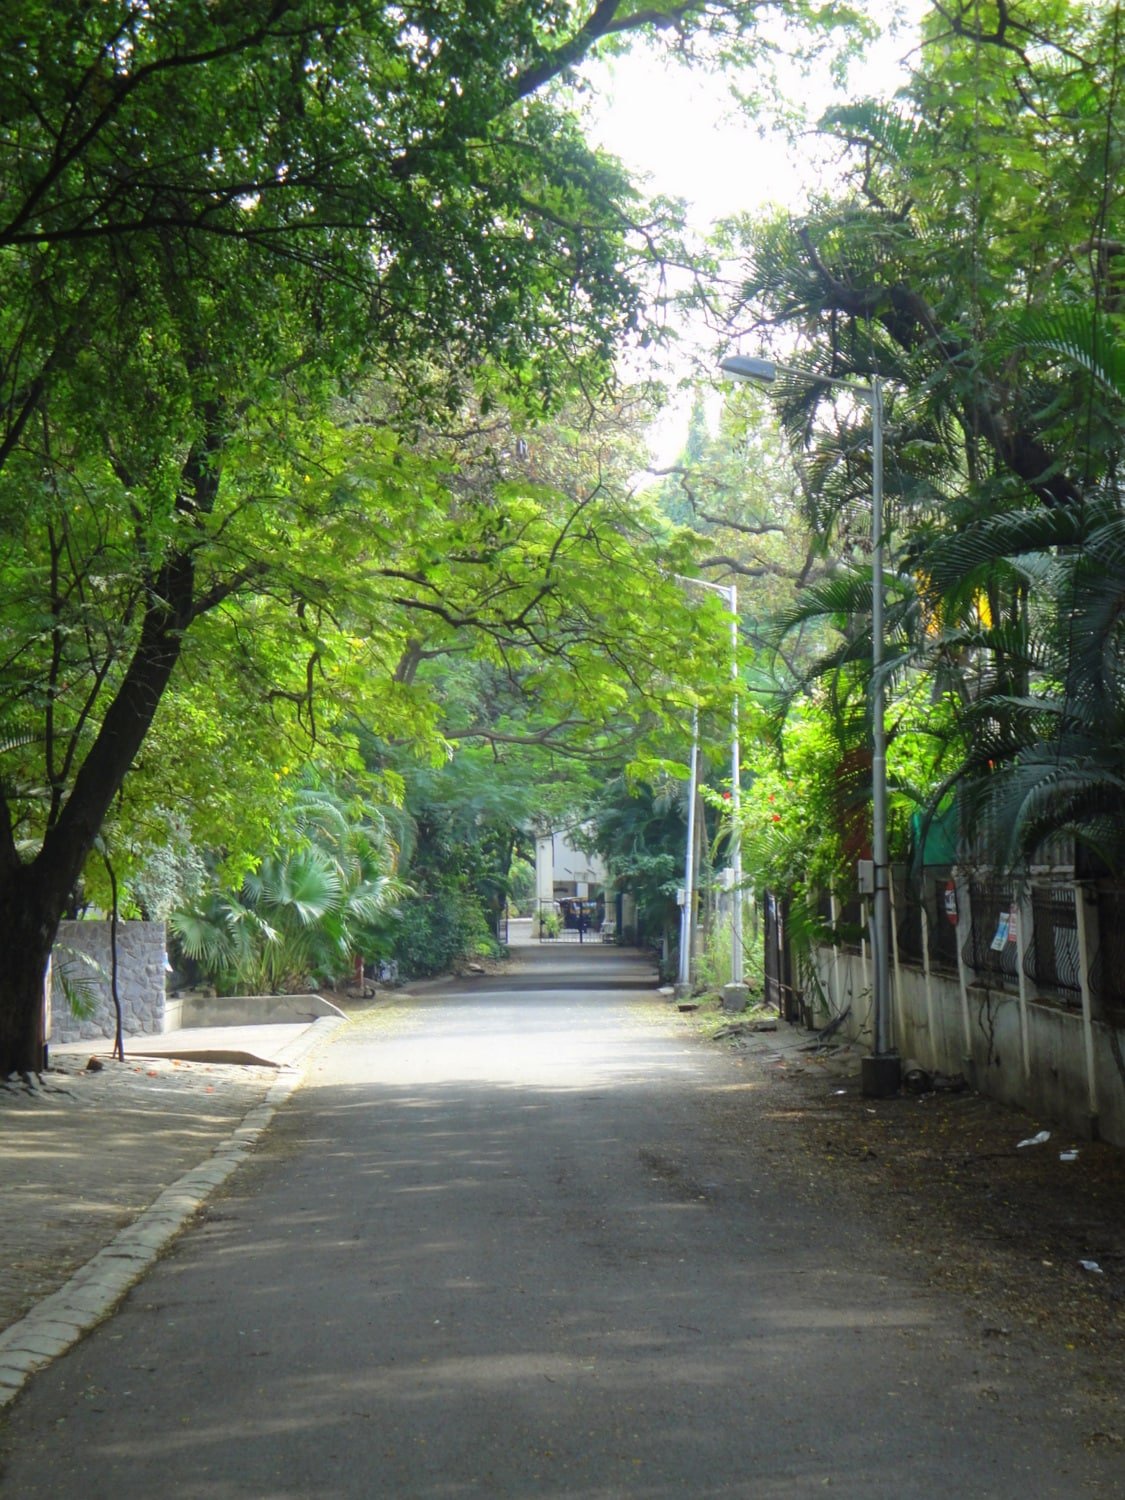 Road leading to the apartment which is at the end.